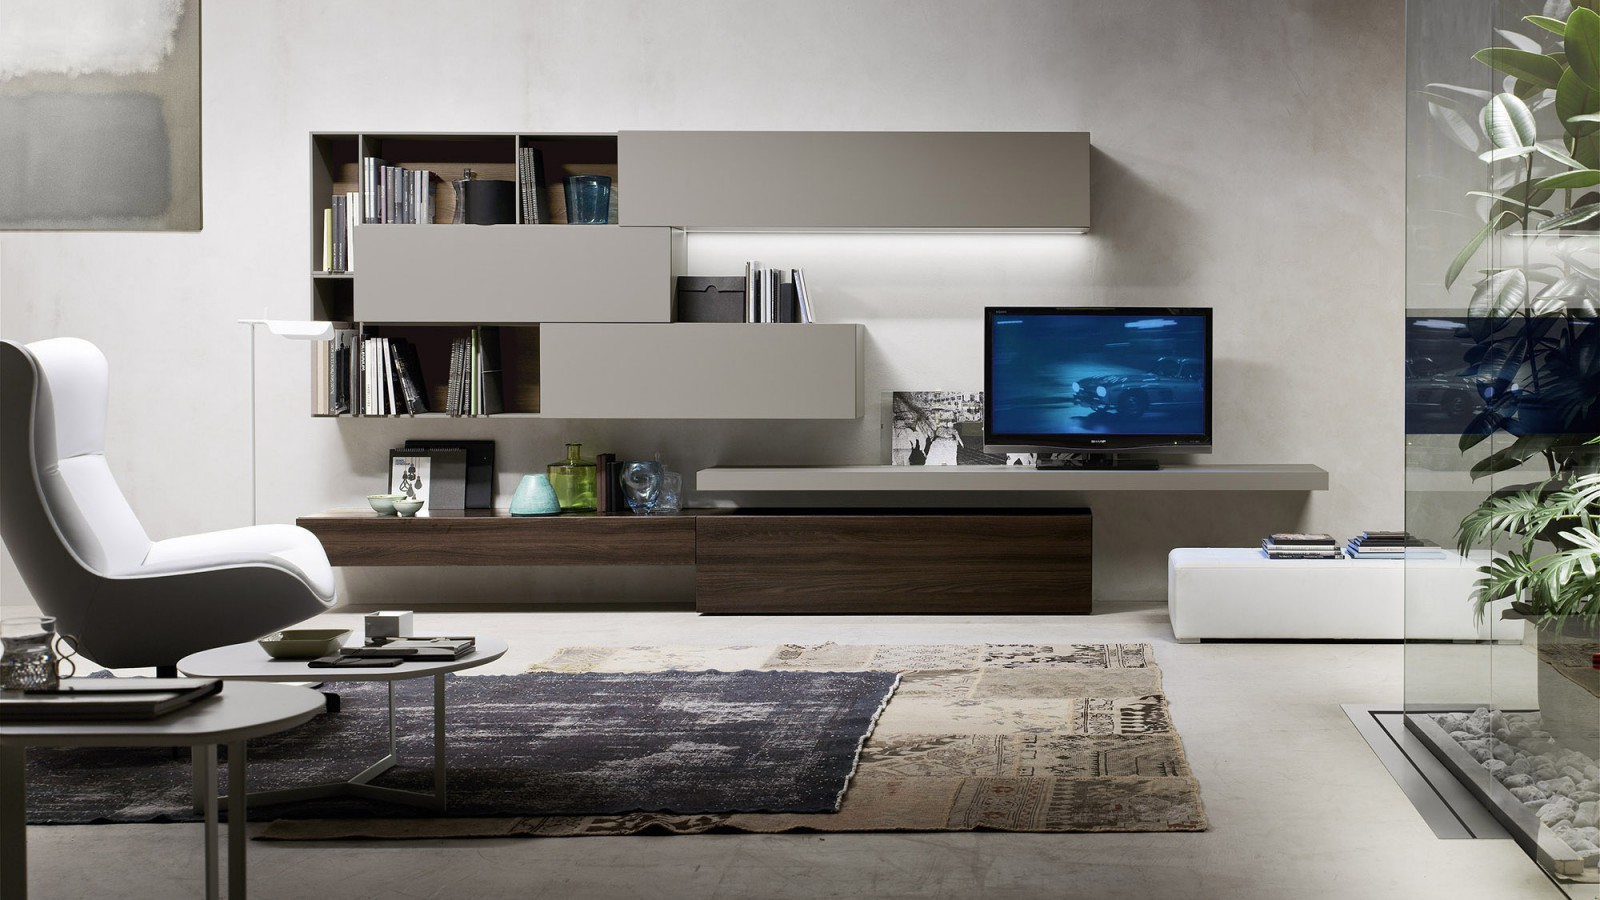 Comp modulo 6 orme for Arredamento design moderno